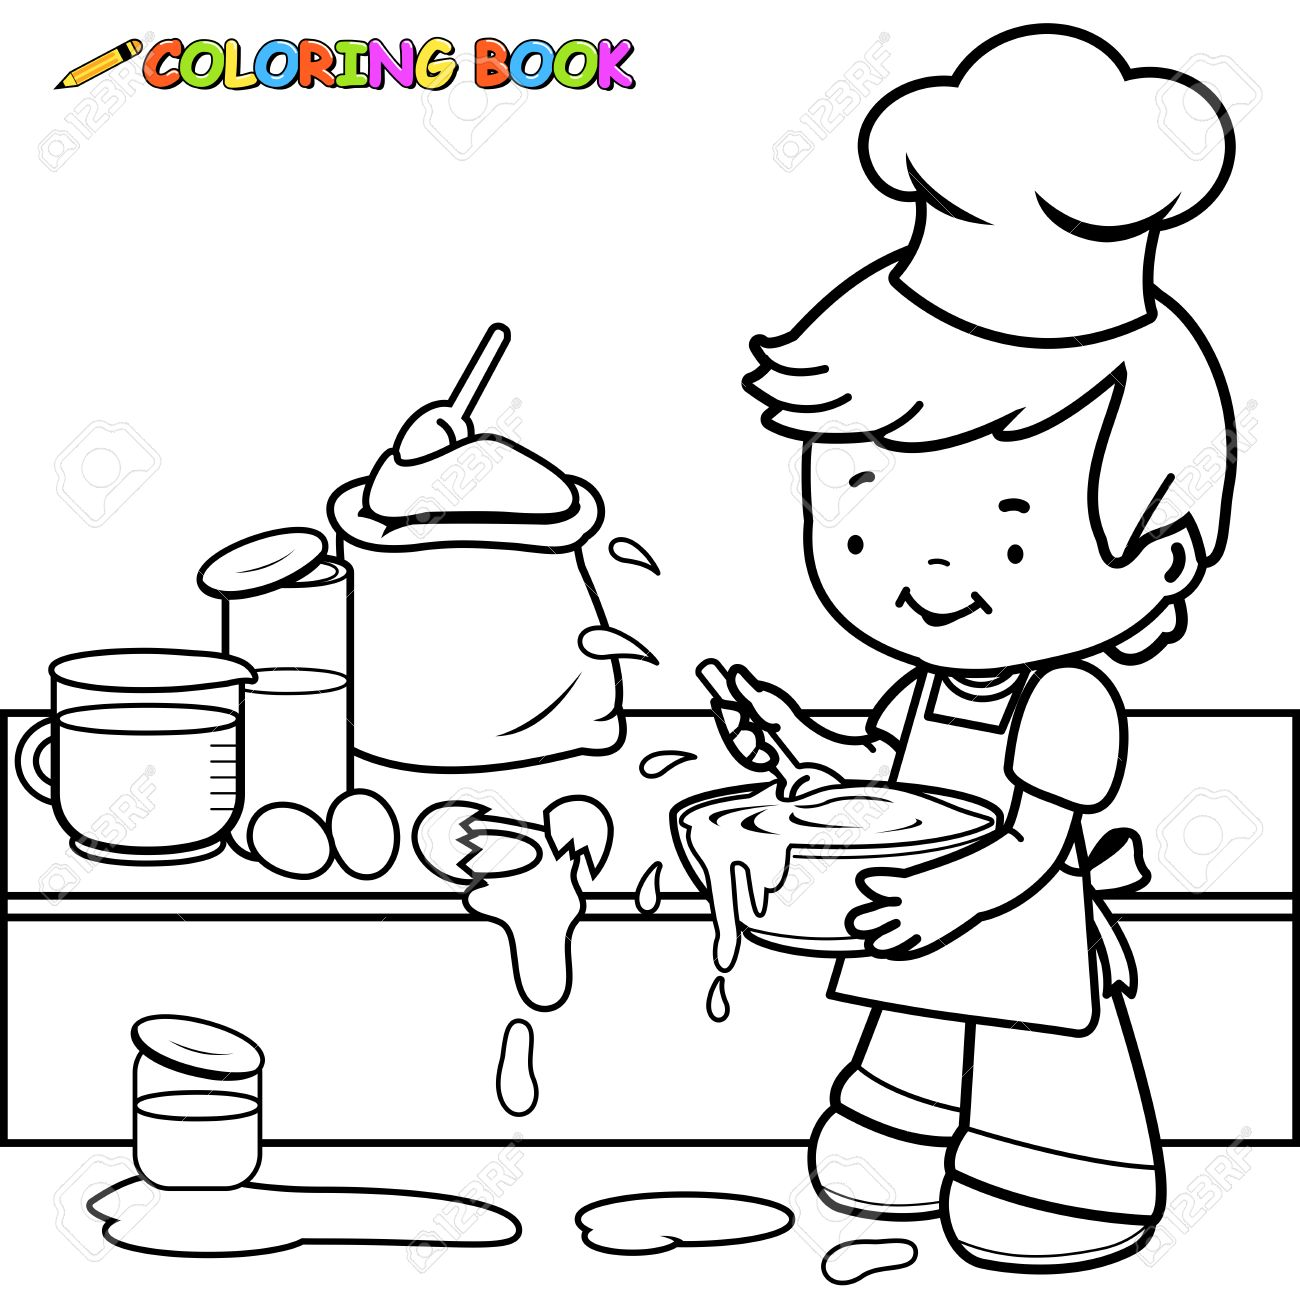 little boy cooking and making a mess coloring book page stock vector 49856114